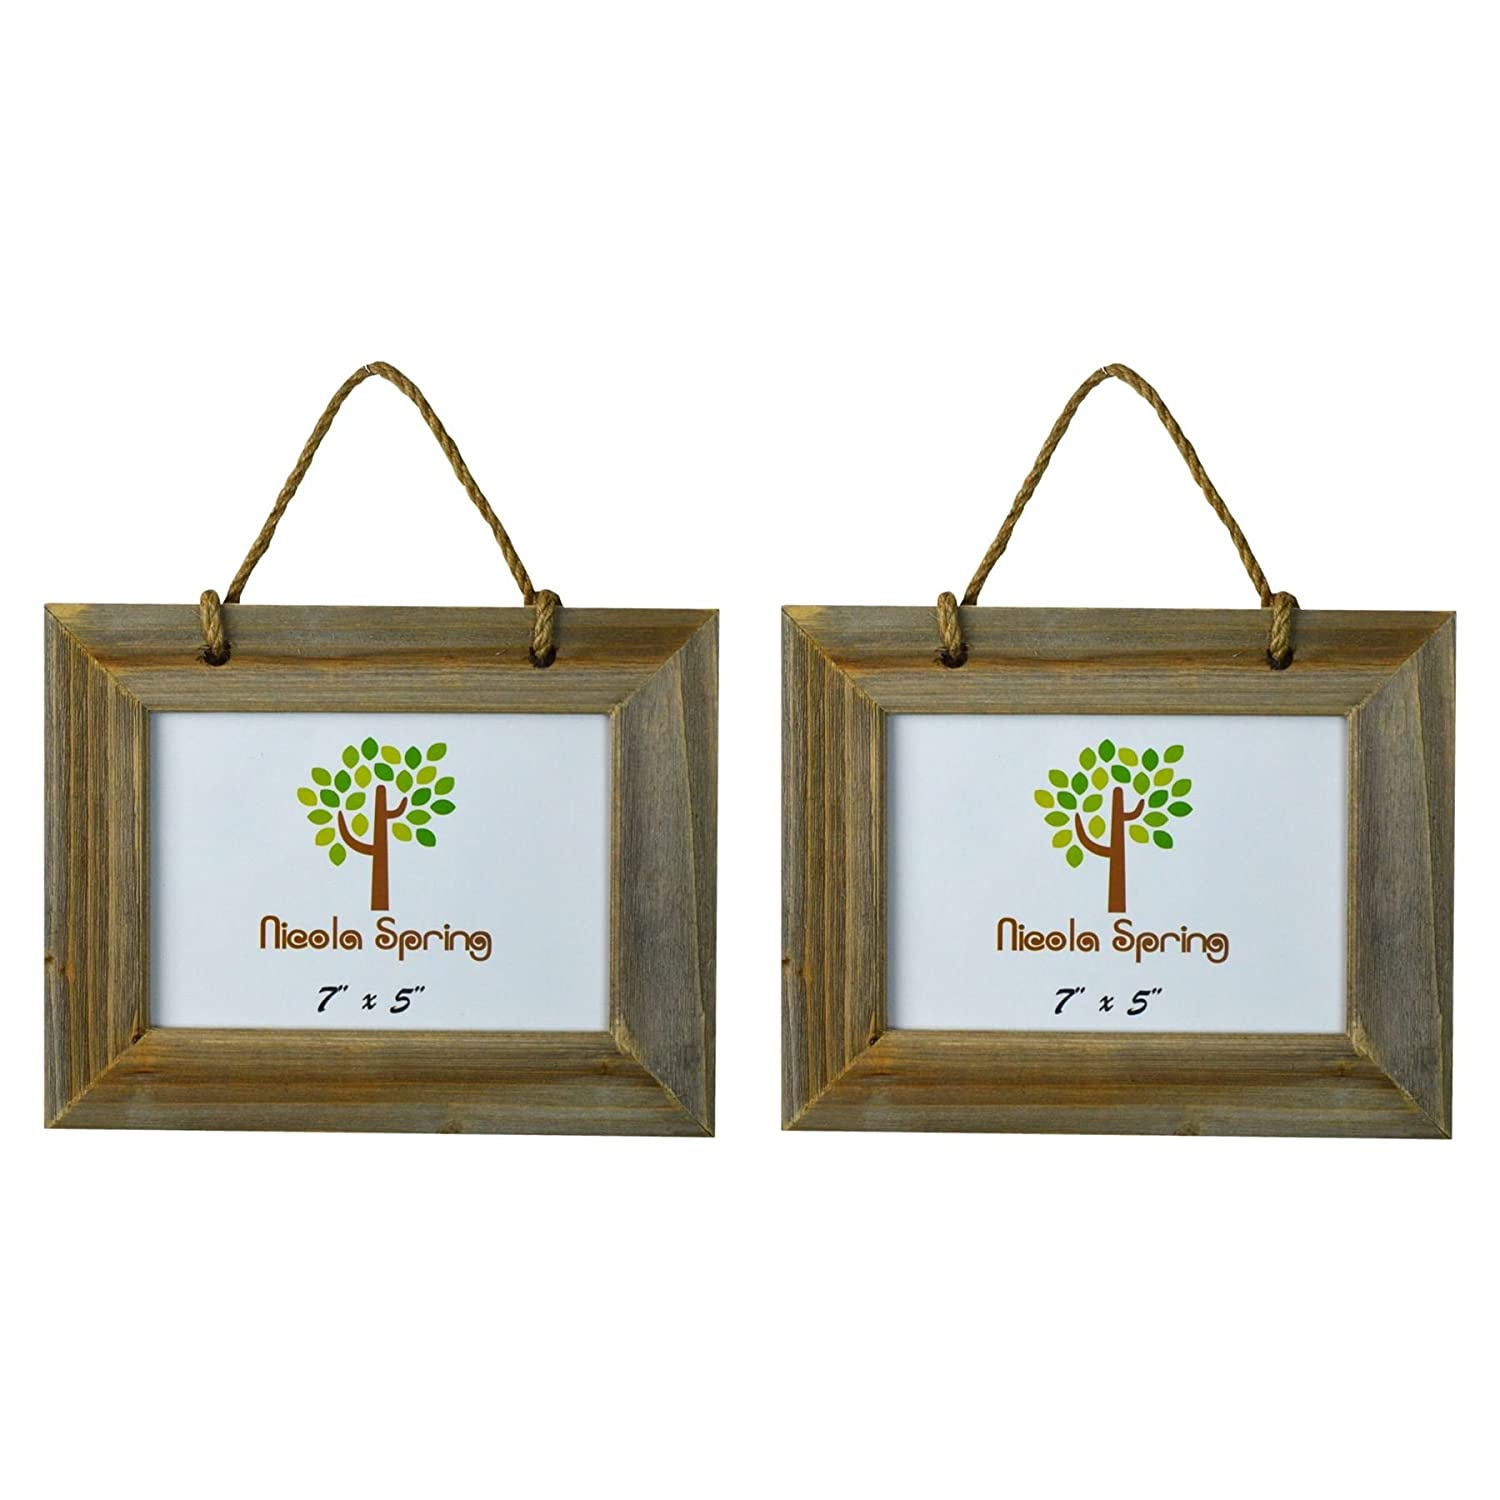 Nicola Spring Wooden Hanging Photo Picture Frame - 7 x 5 - Pack Of 2